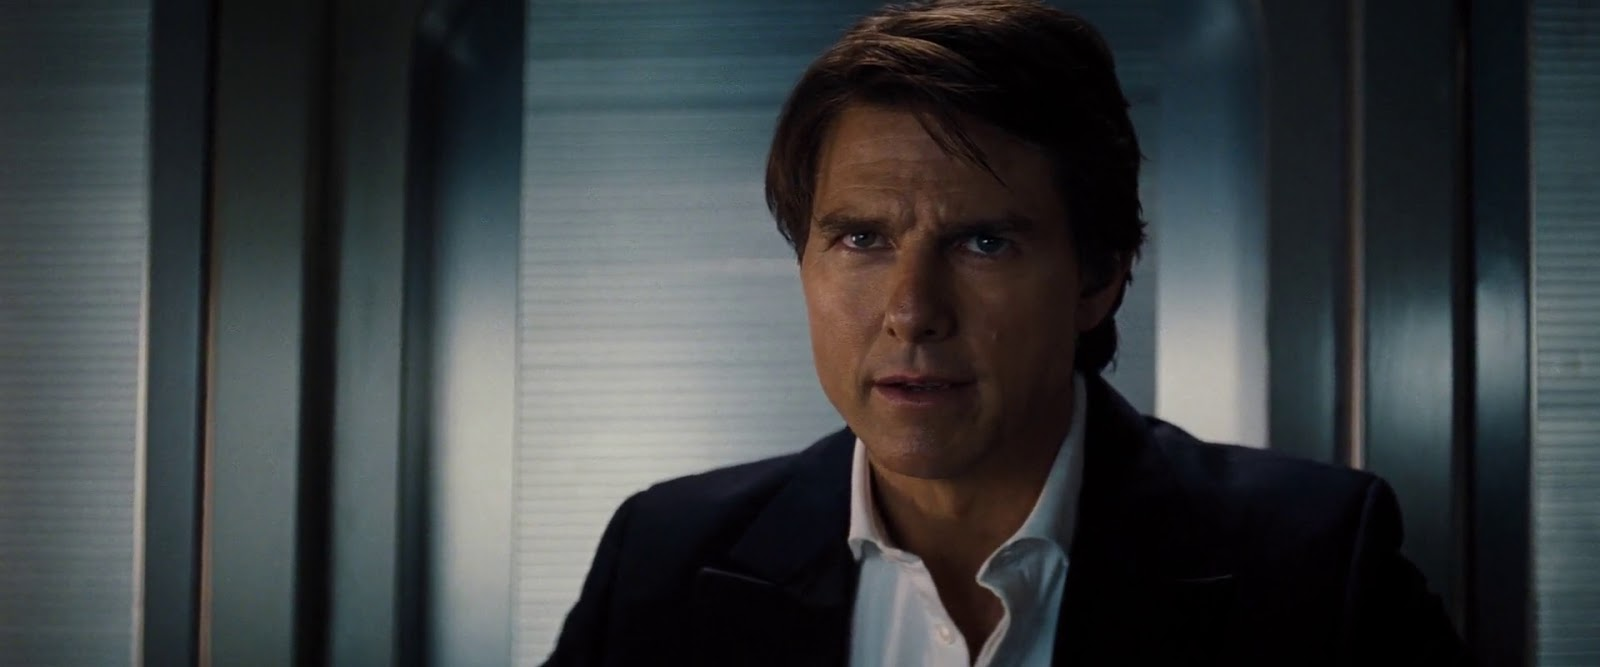 Mission: Impossible - Rogue Nation (2015) 2